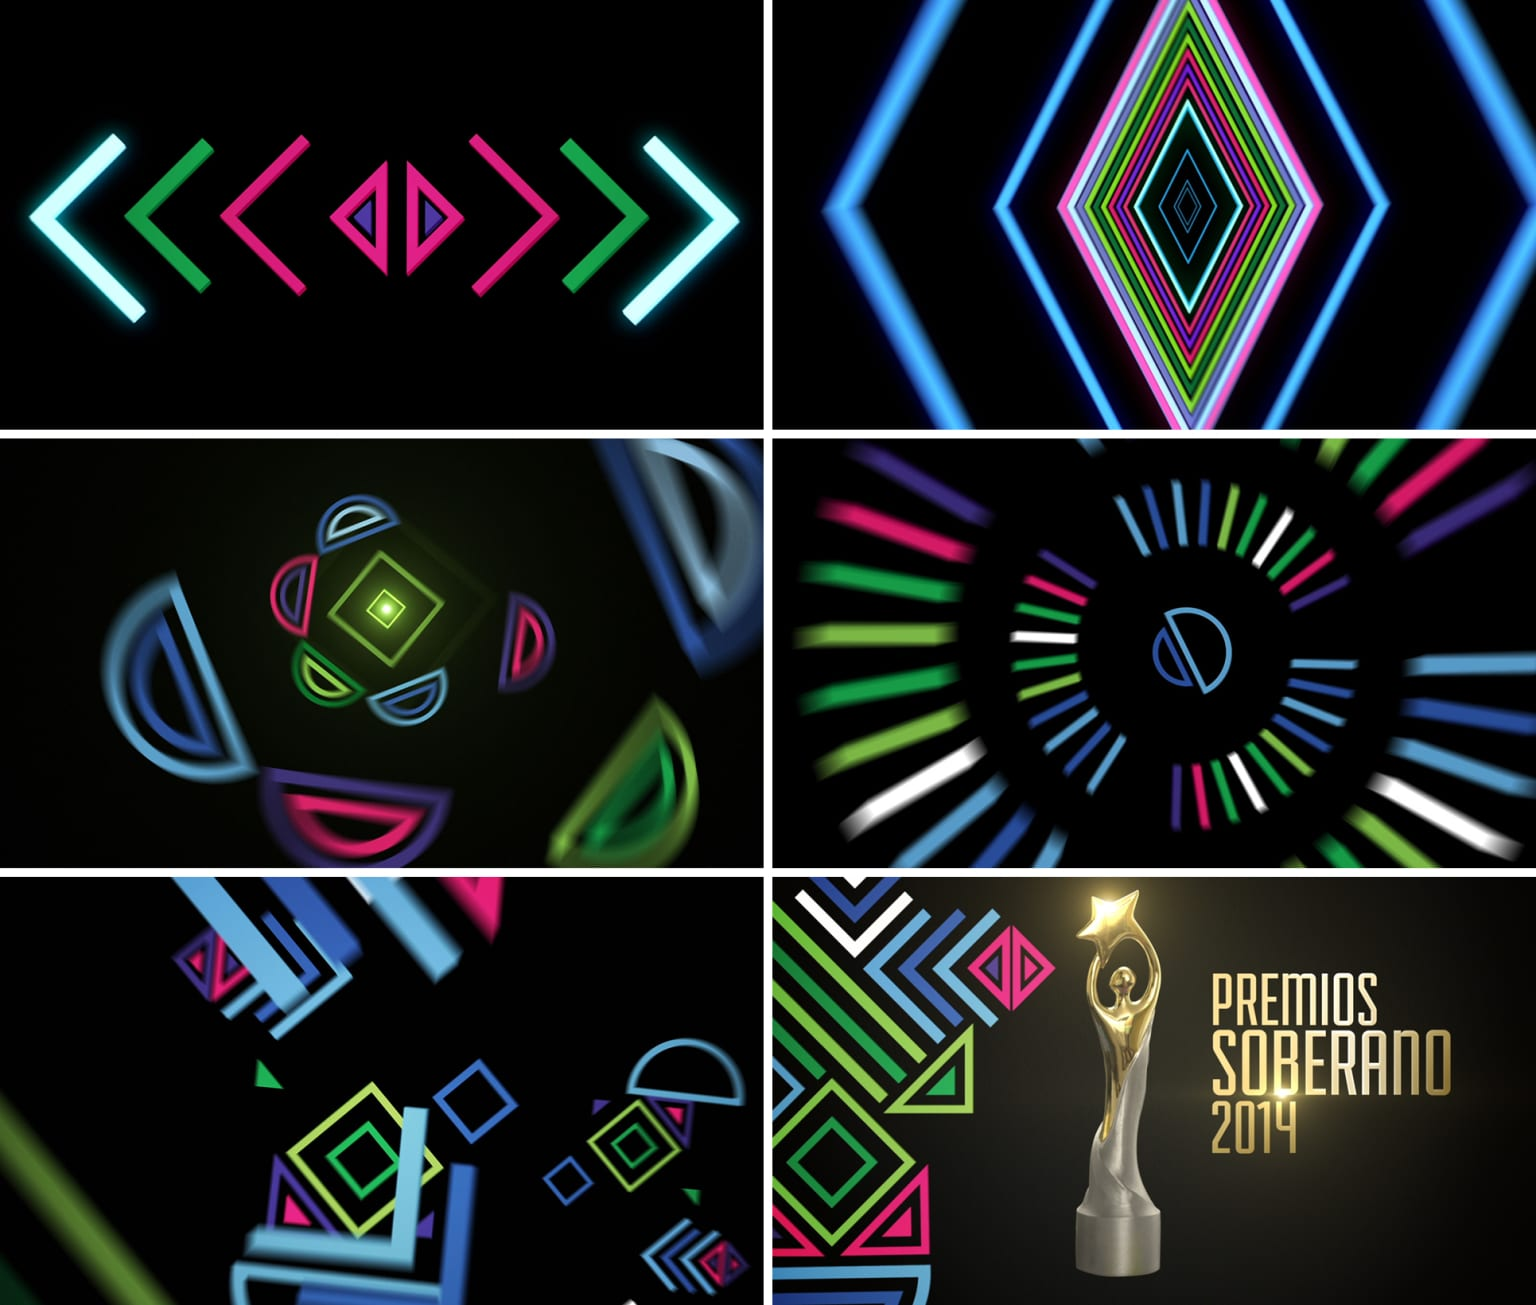 Soberano Awards Opening